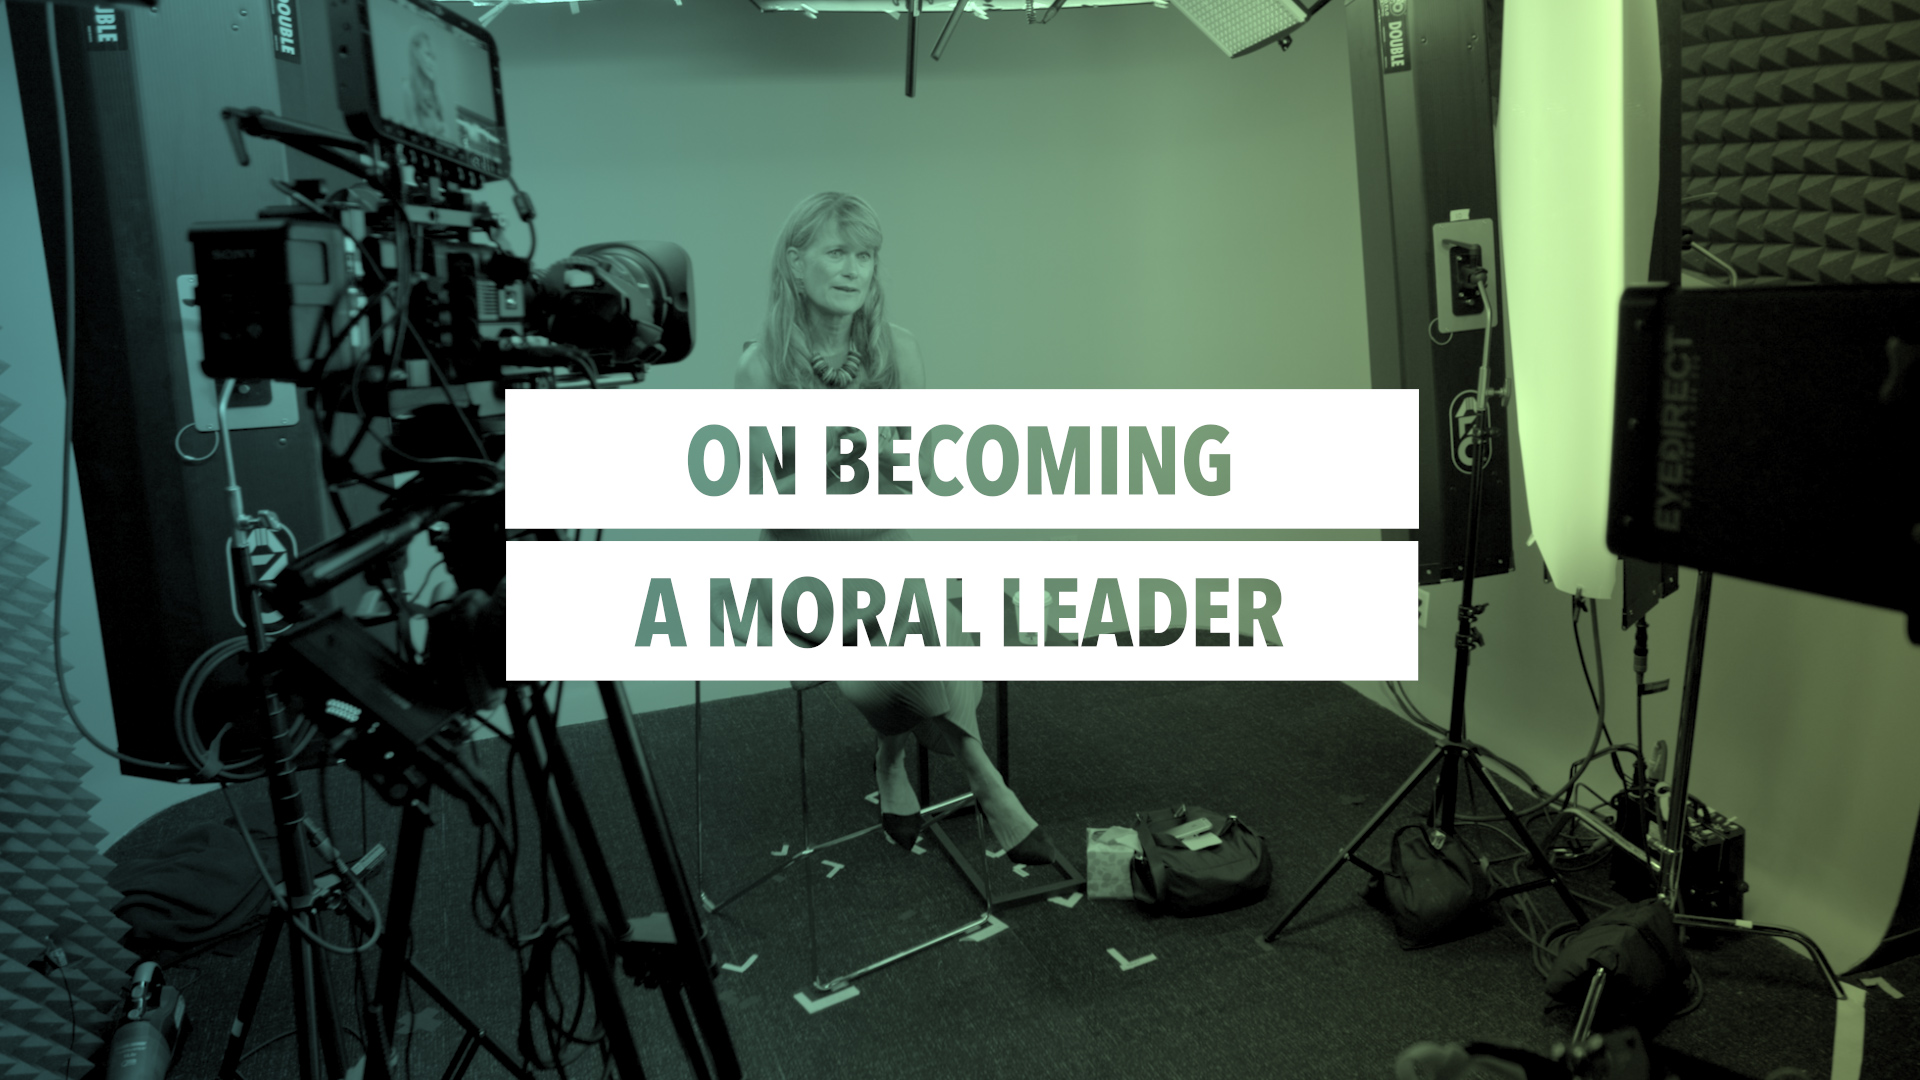 Qualities of a moral leader: On Becoming a Moral Leader